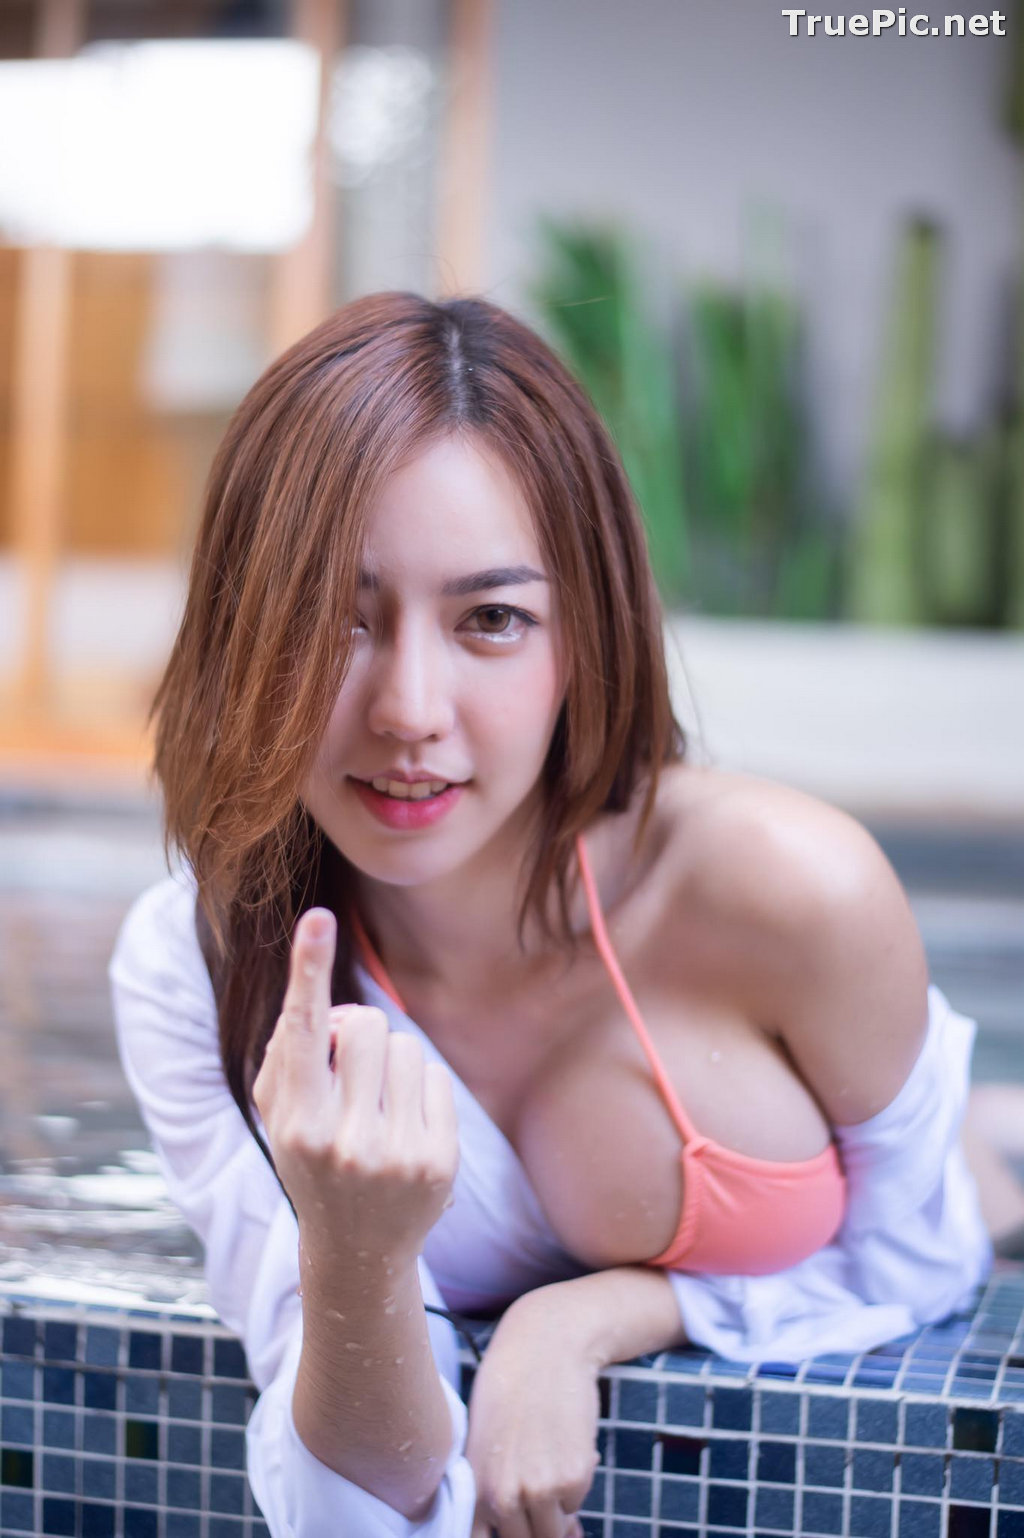 Image Thailand Model - Champ Phawida - Champ In The Pool - TruePic.net - Picture-6